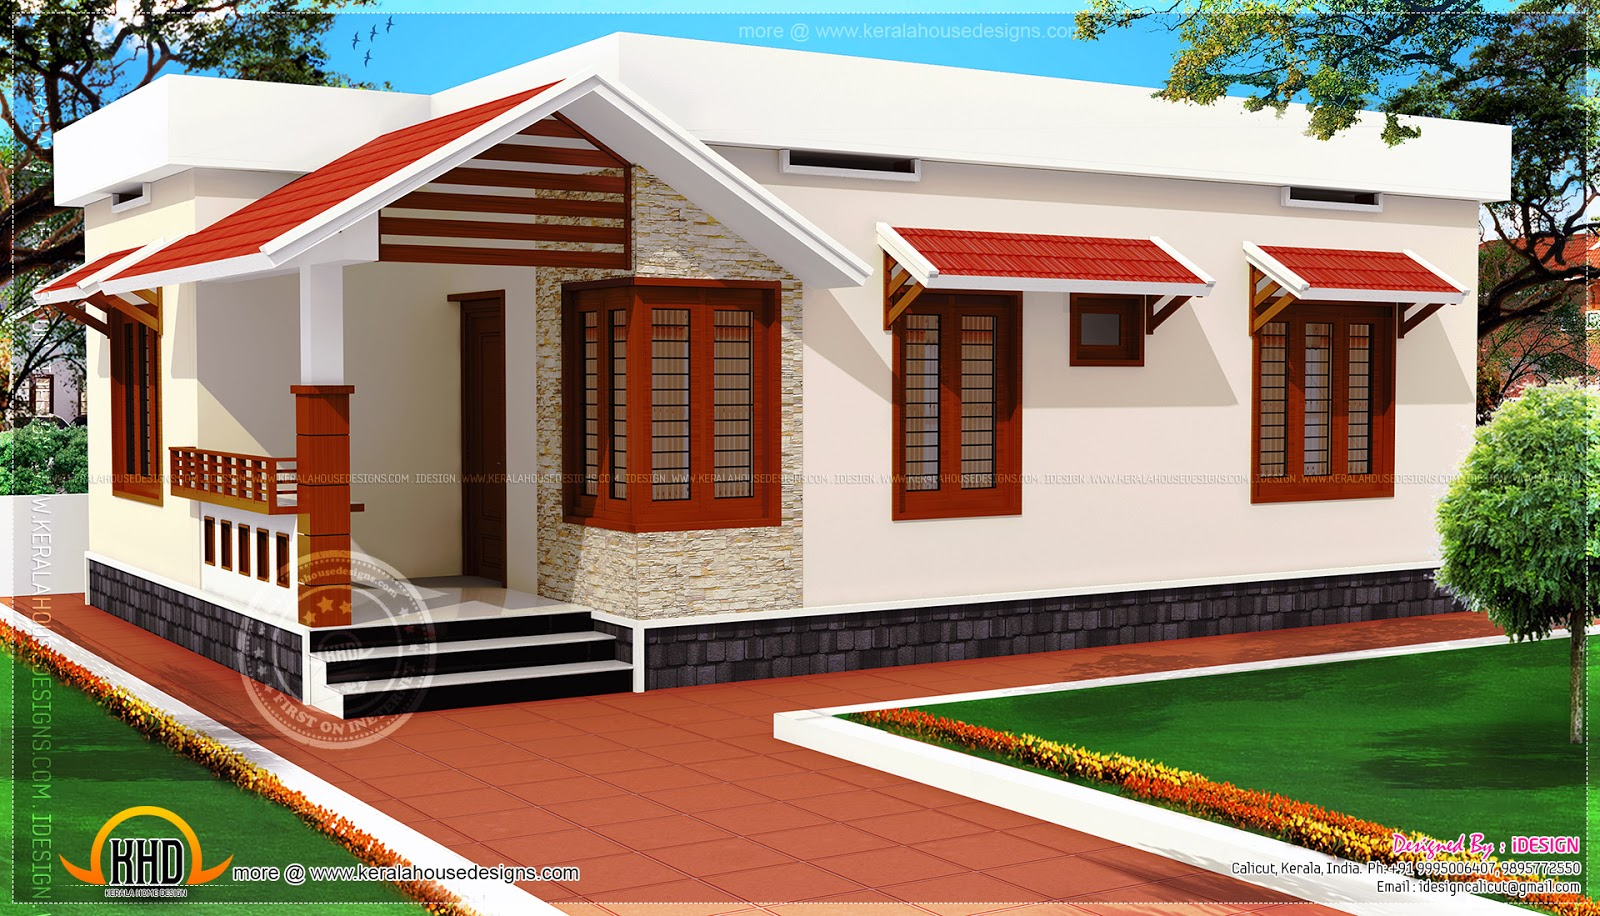 Low cost kerala home design in 730 square feet kerala for Kerala home designs low cost